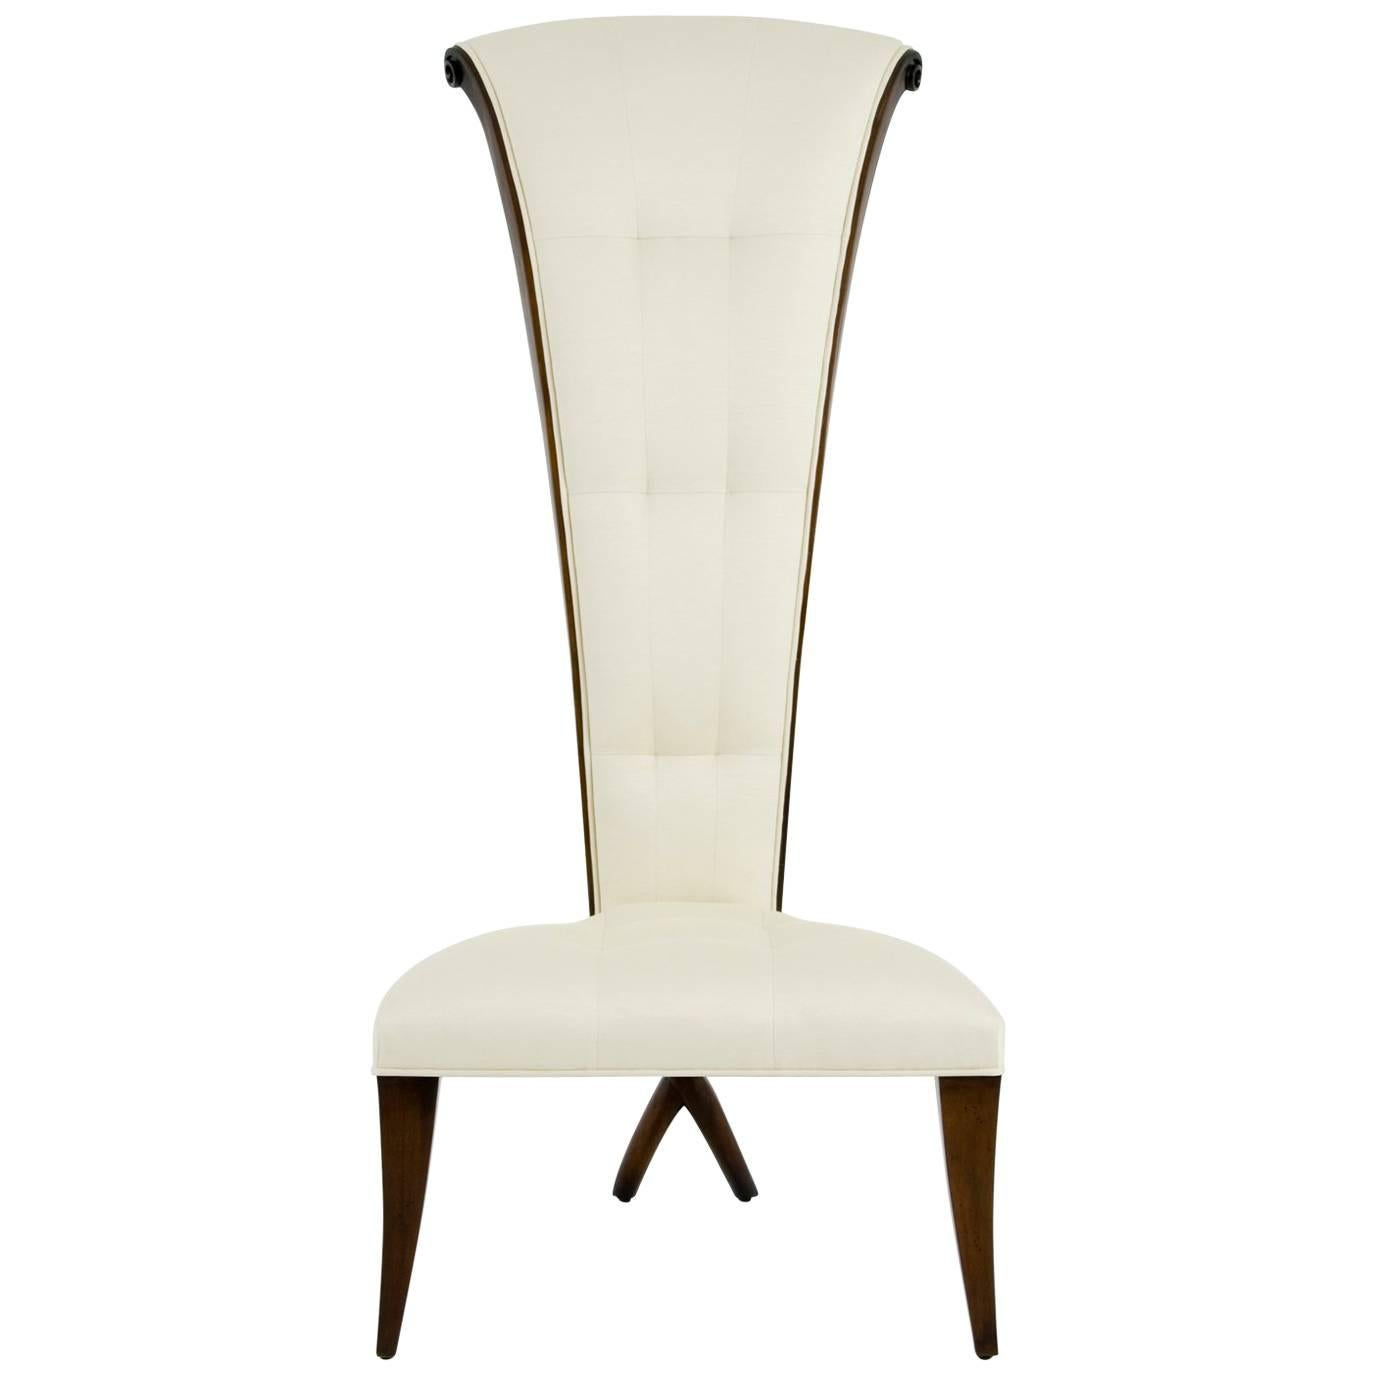 Smart High Back Chair in Solid Mahogany Wood and High Quality Fabric